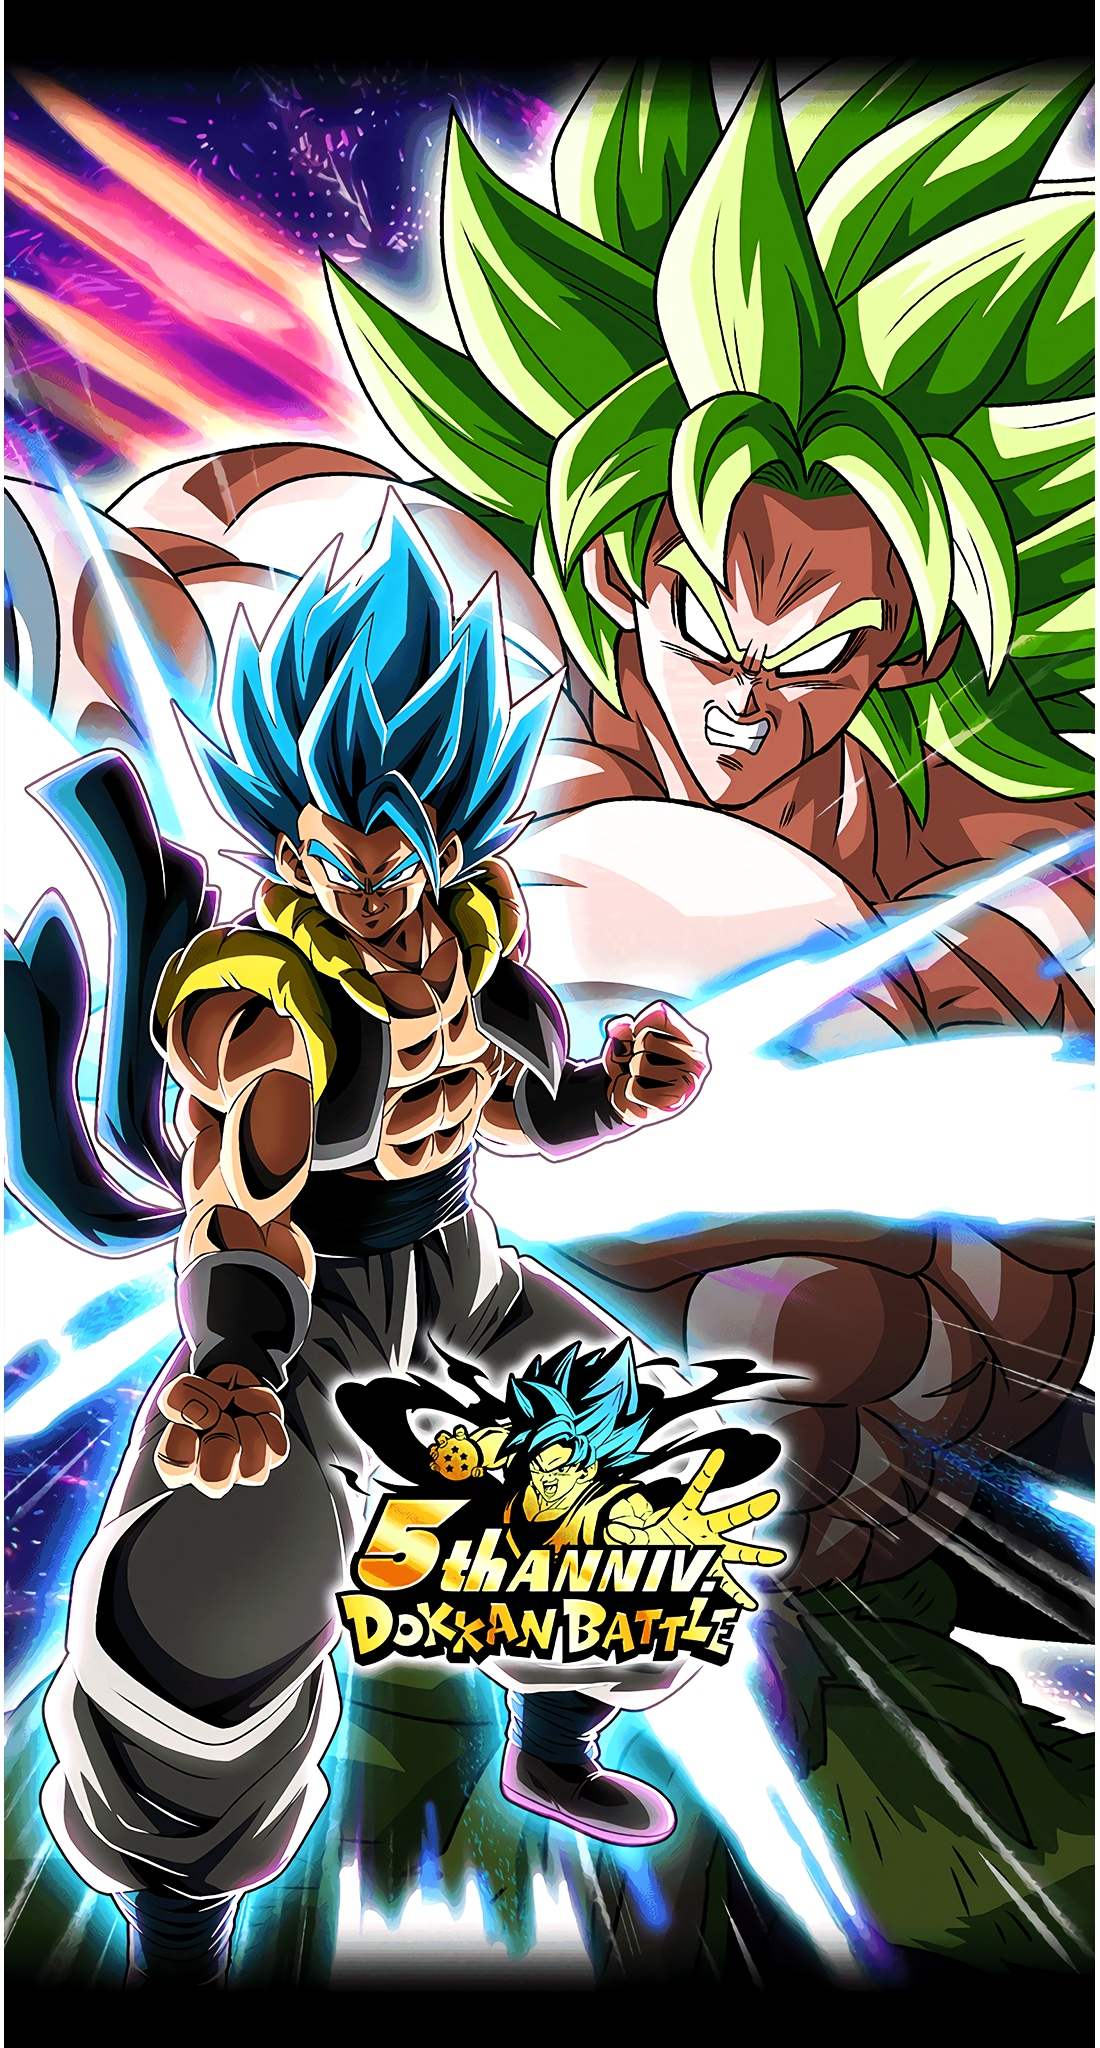 Movie Broly vs Gogeta Blue 5 Year Anniversary Art (Dragon Ball Z Dokkan Battle).jpg